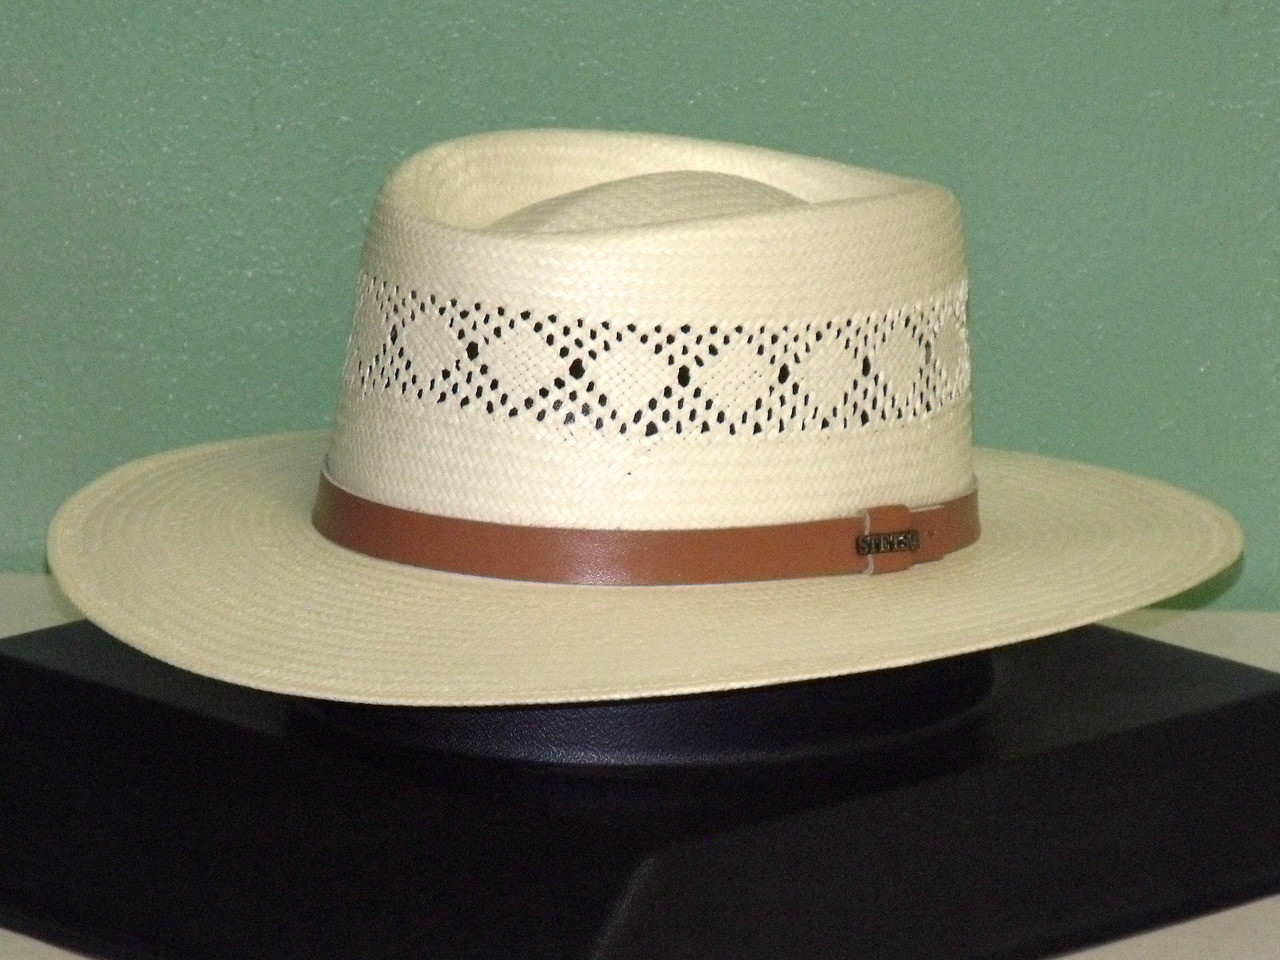 fbe21e4f677fc Stetson Brentwood Vented Shantung Straw Gambler hat - One 2 mini Ranch